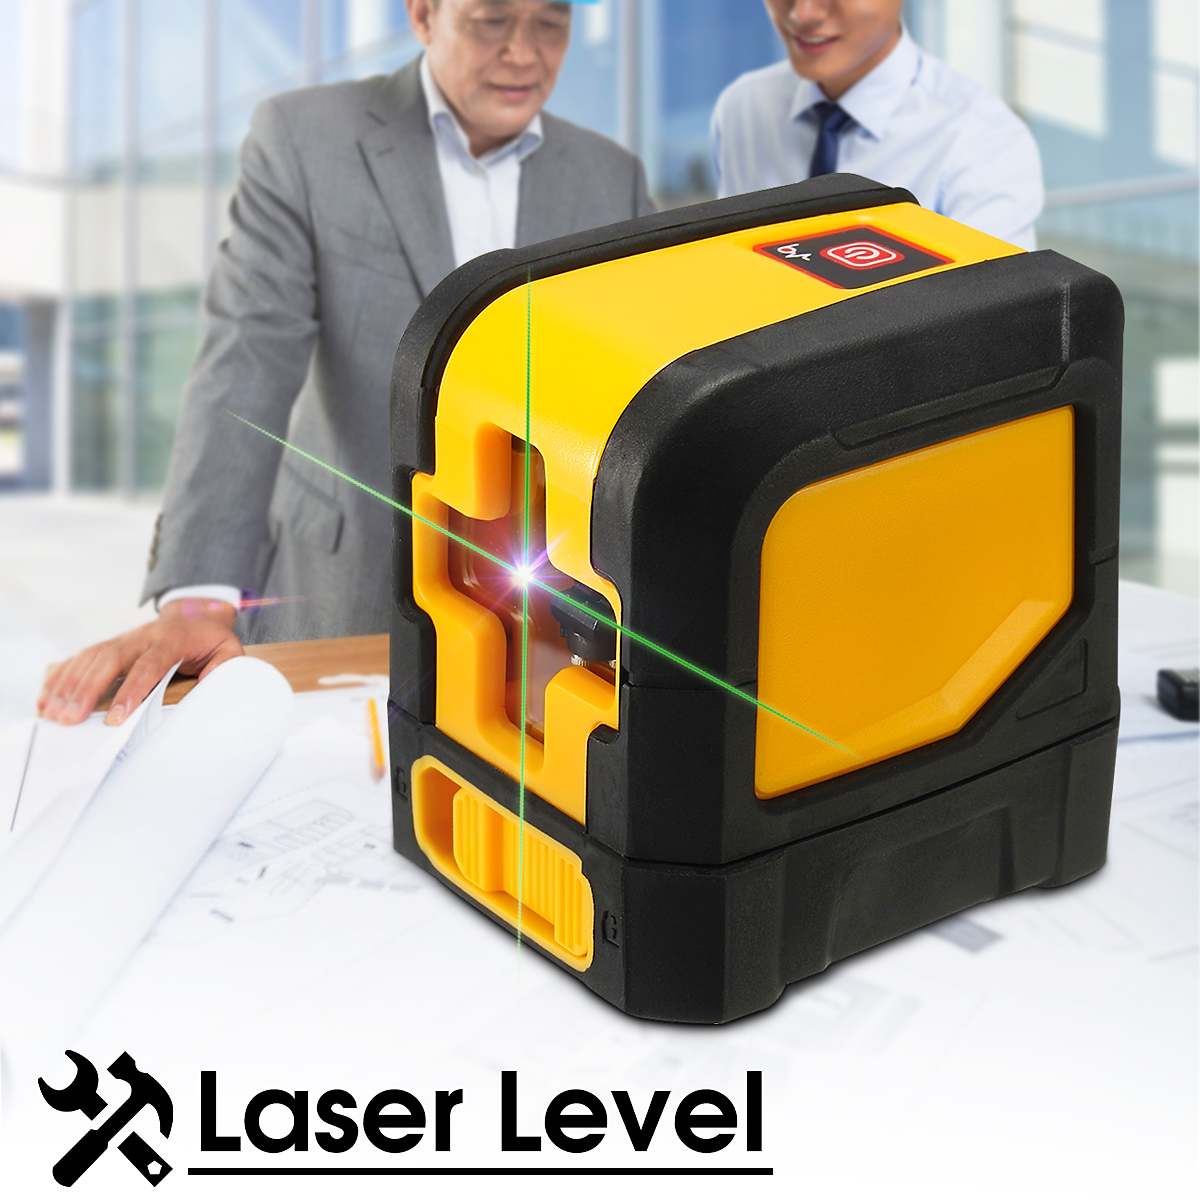 360° Self-Leveling Cross Laser Level Plumb Green 2 Line 1 Point With Mount 30m